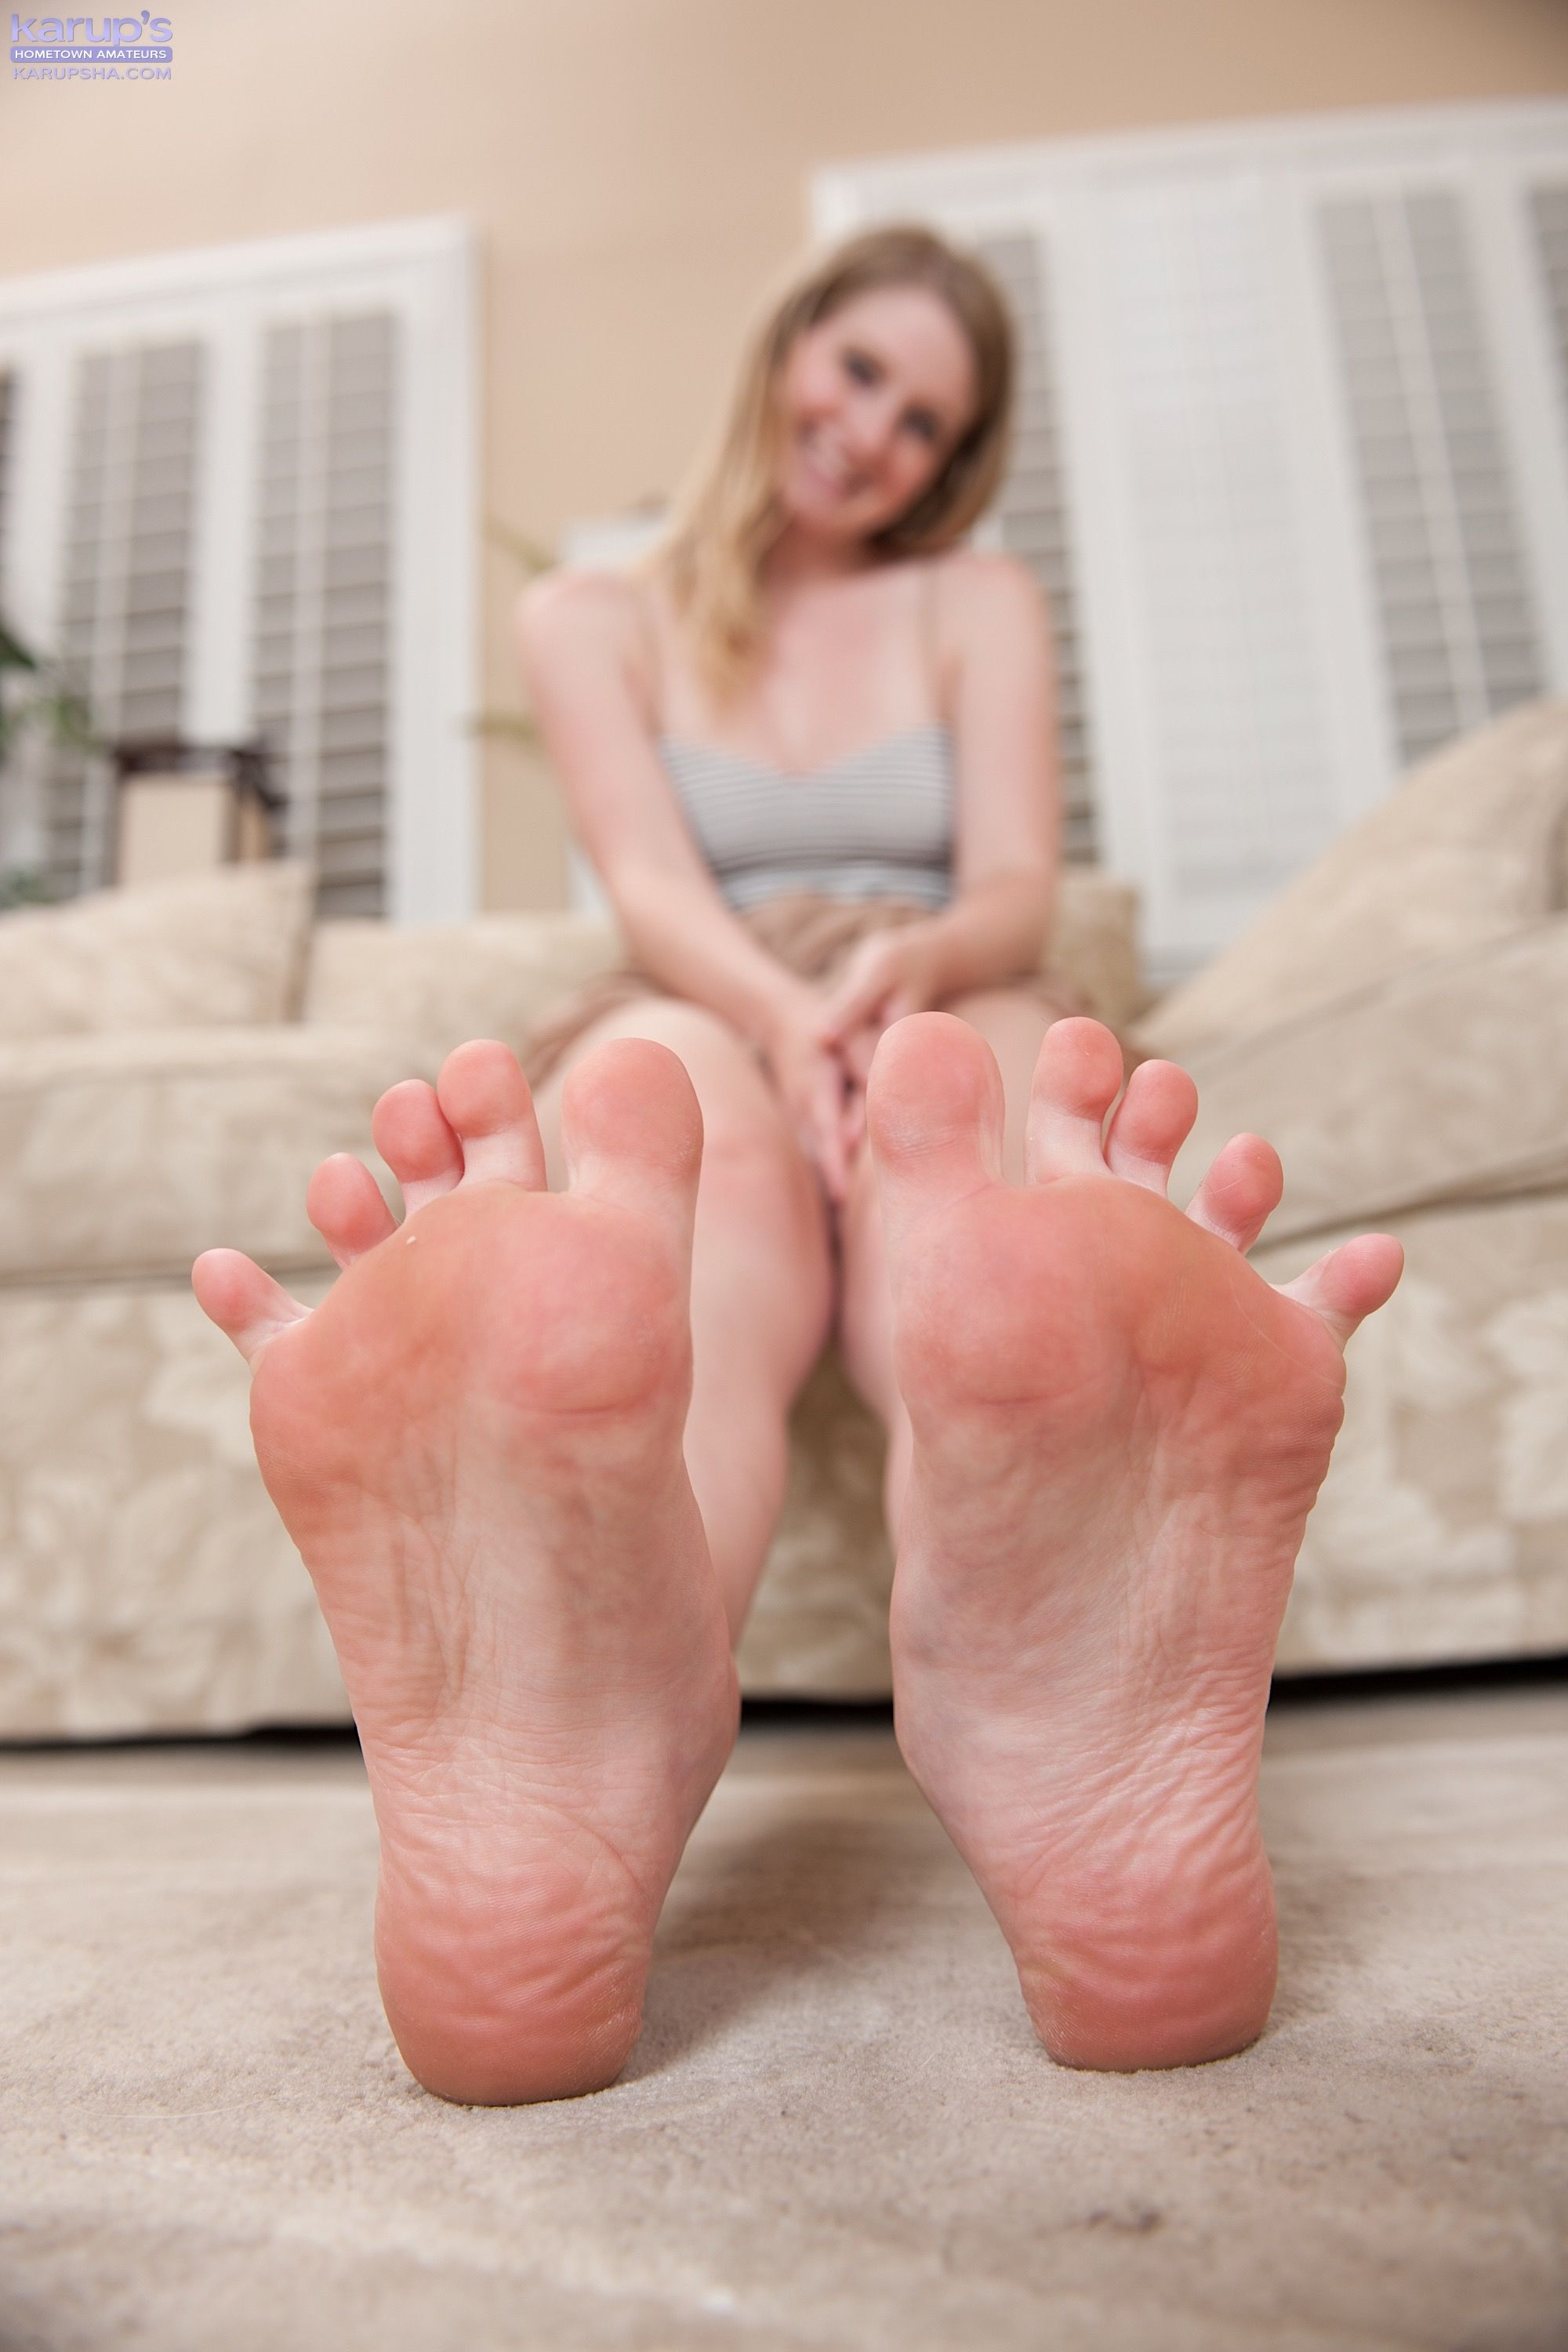 Summer Carter Shows Off Her Soles And Toes